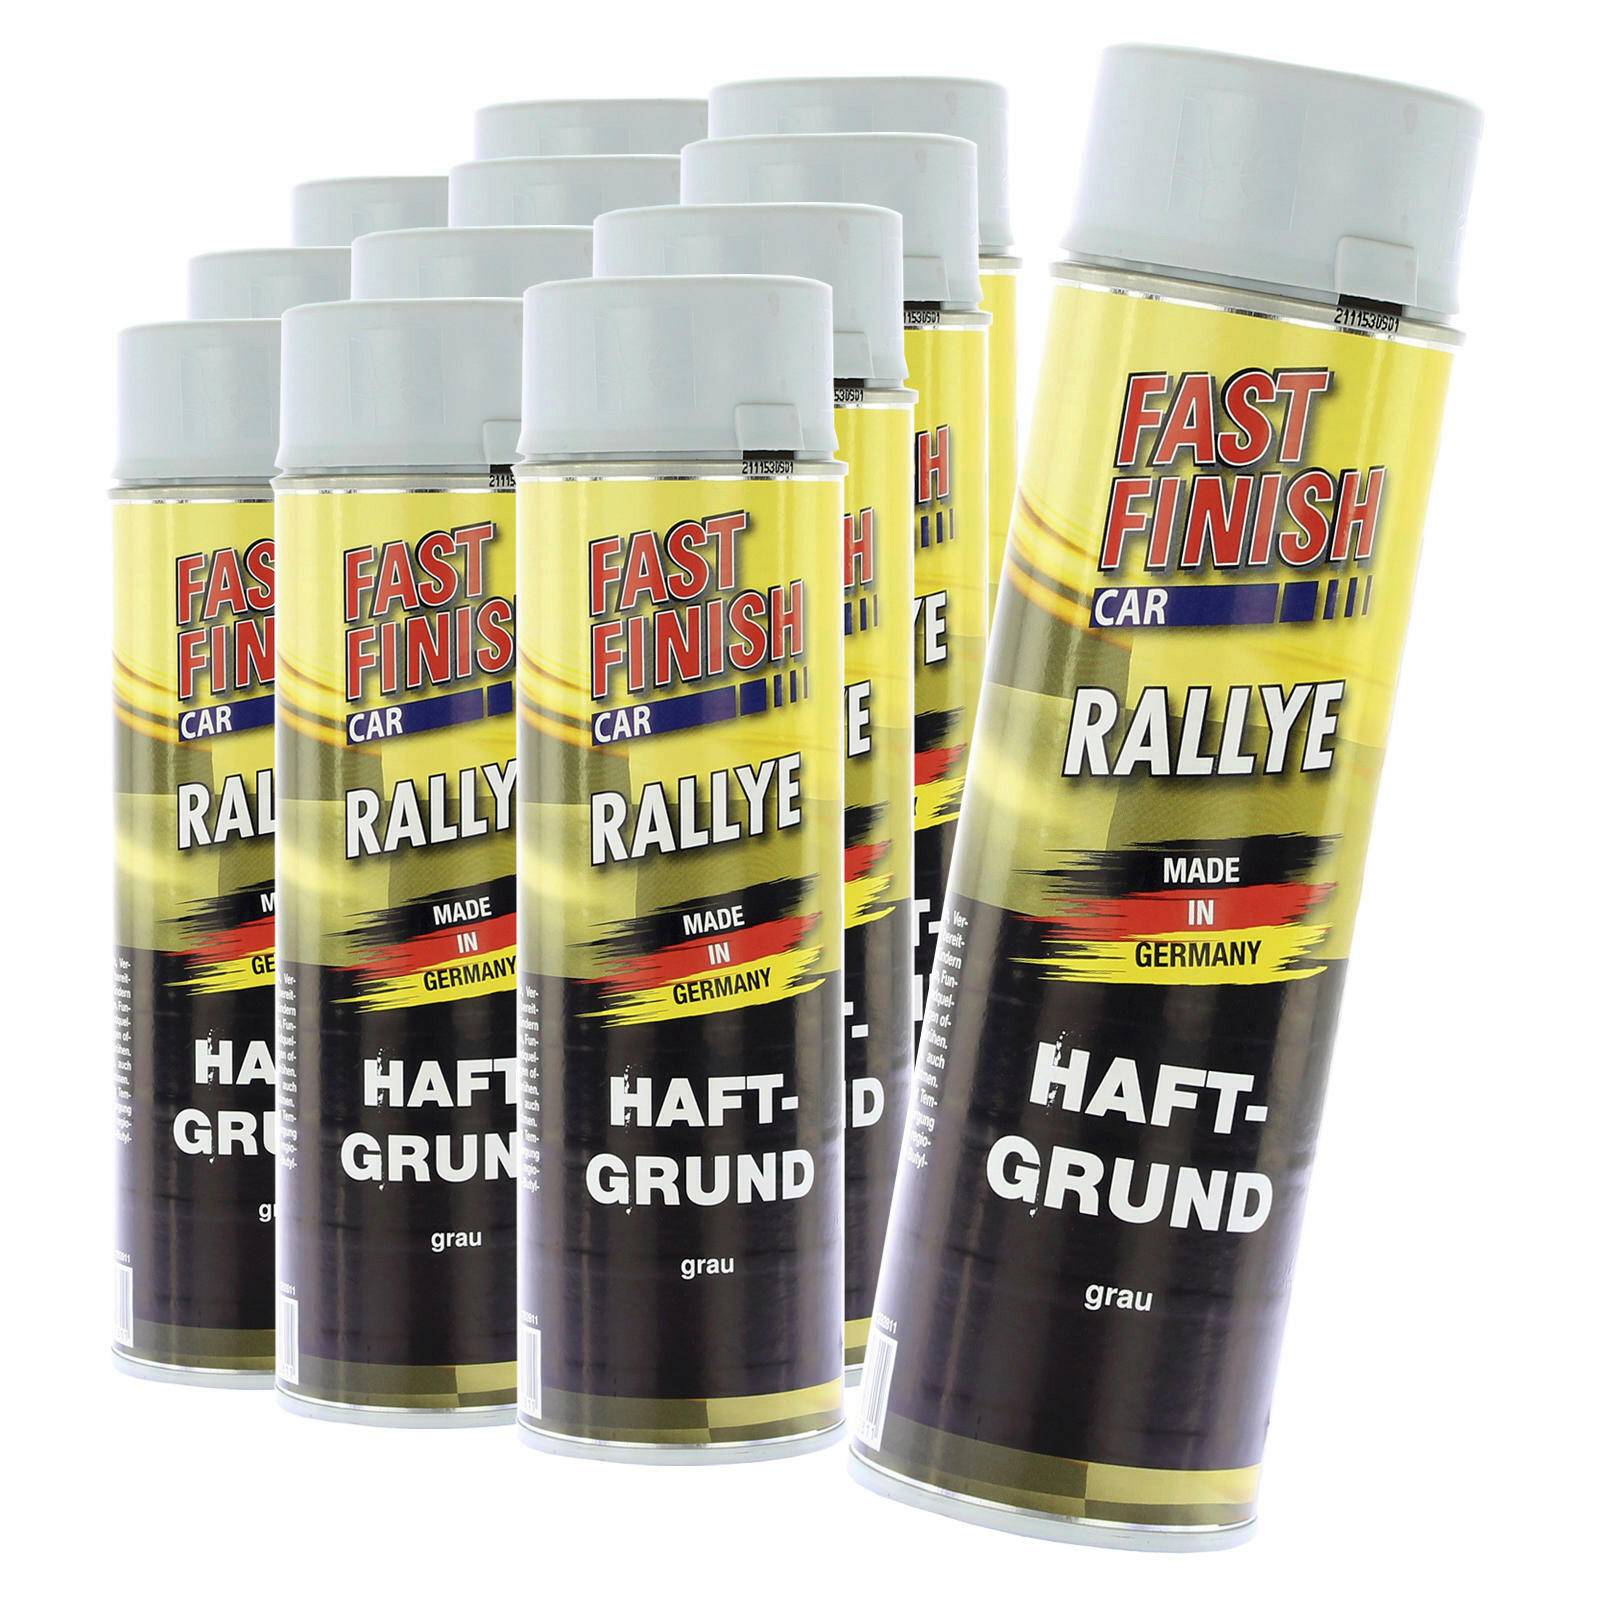 12x Fast Finish Haftgrund grau 500ml